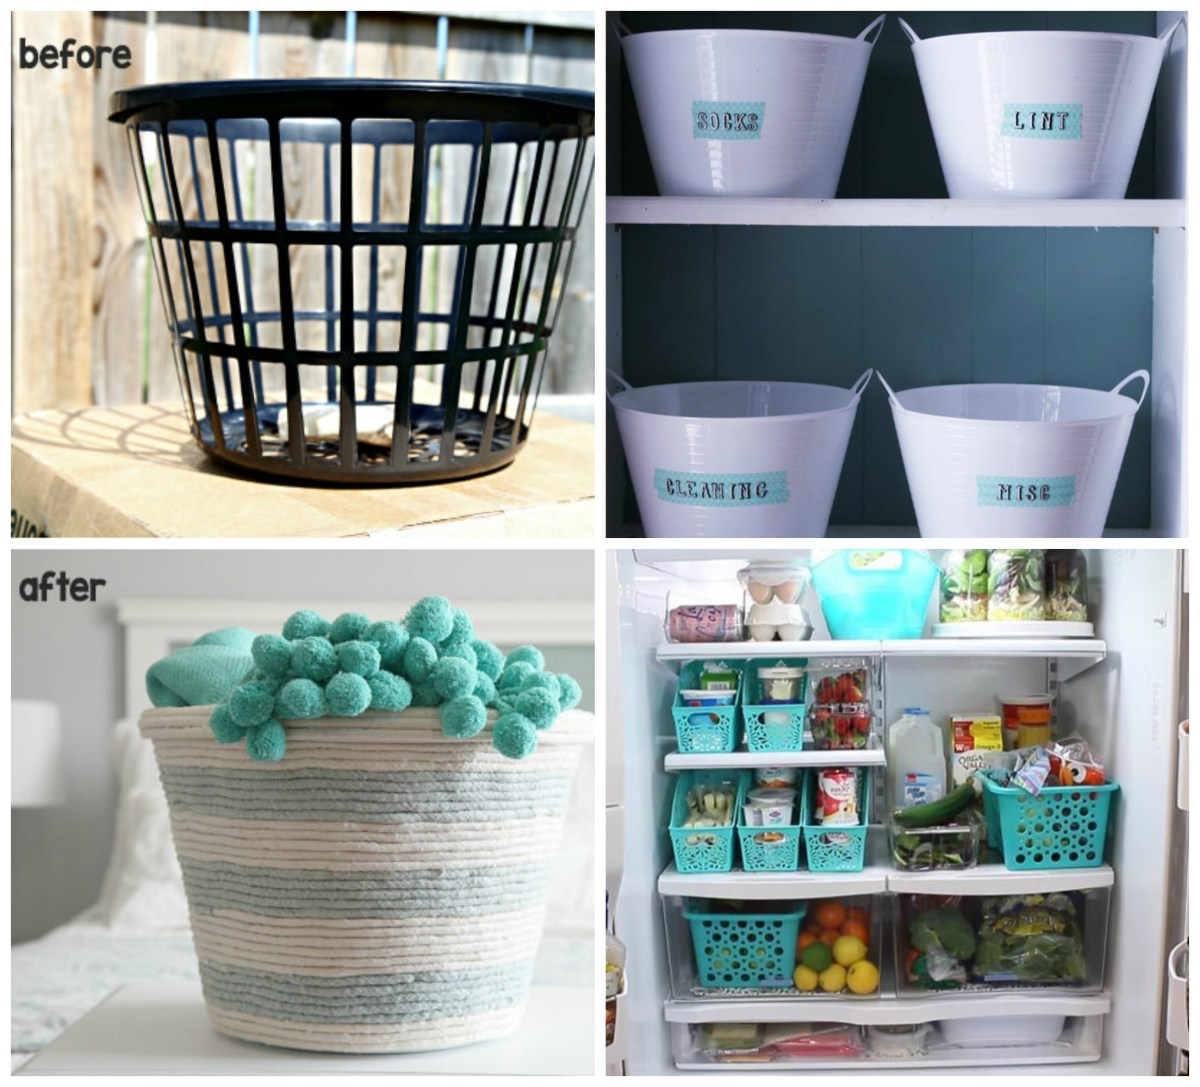 8 Dollar Store Organizing Tricks You've Been Missing Out On